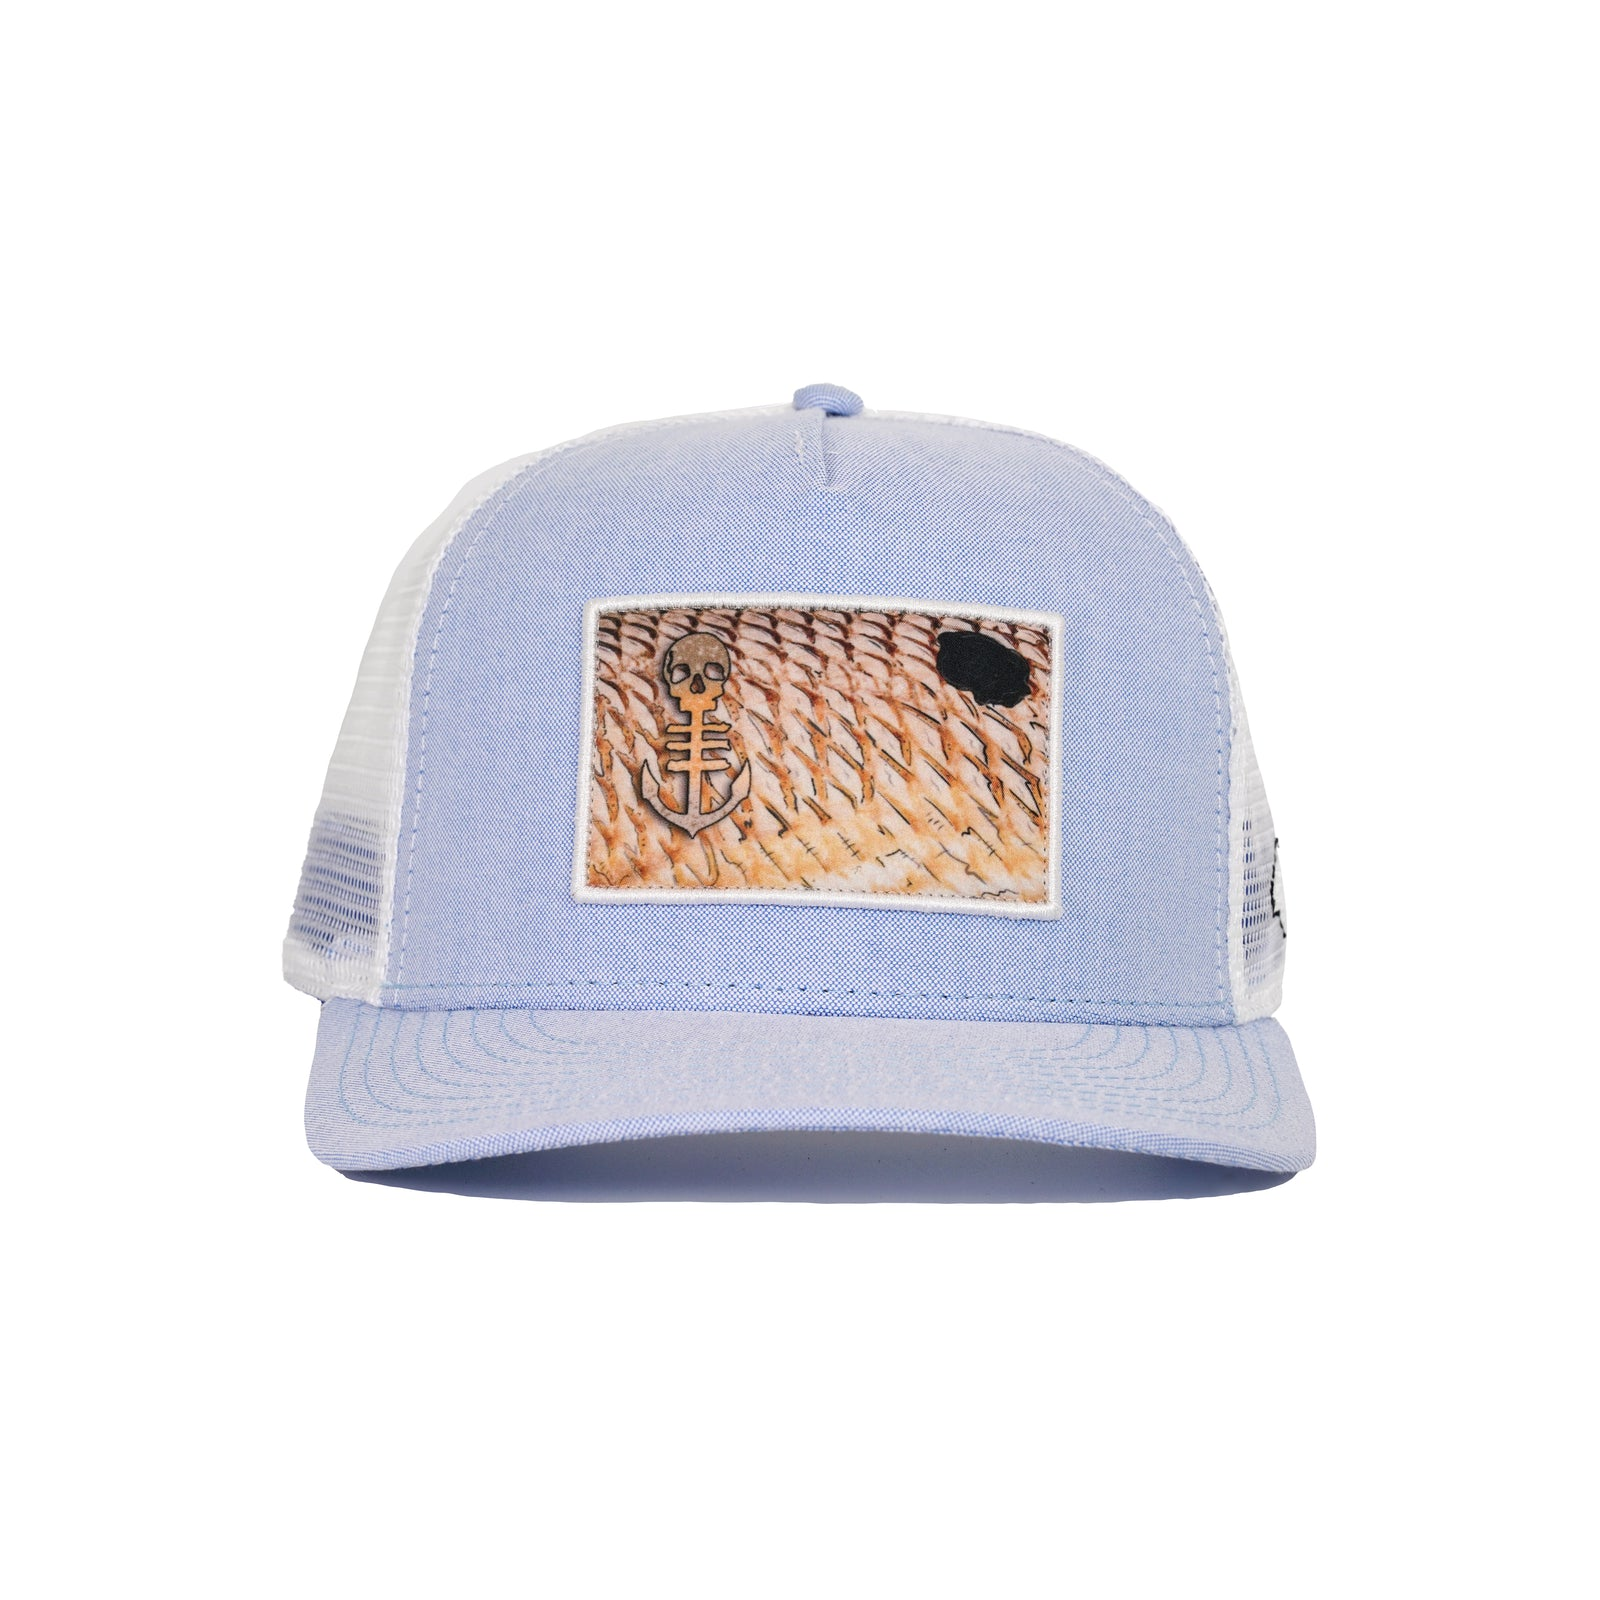 Blue Hat with Redfish Scales Embroidered Patch